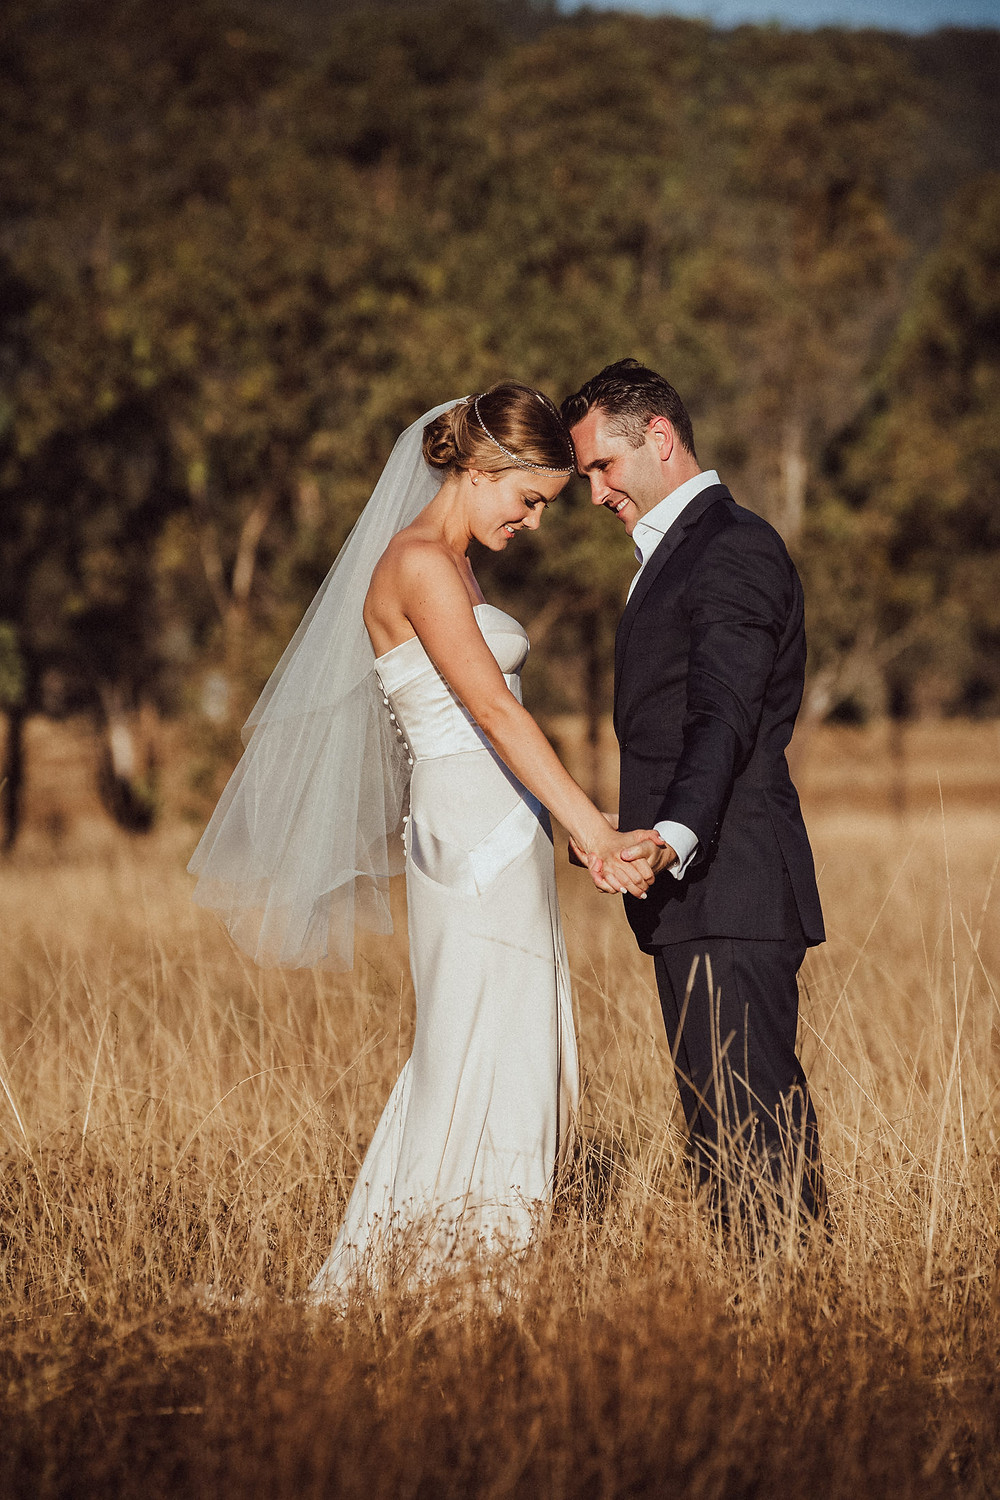 romantic moment between bride and groom at country wedding